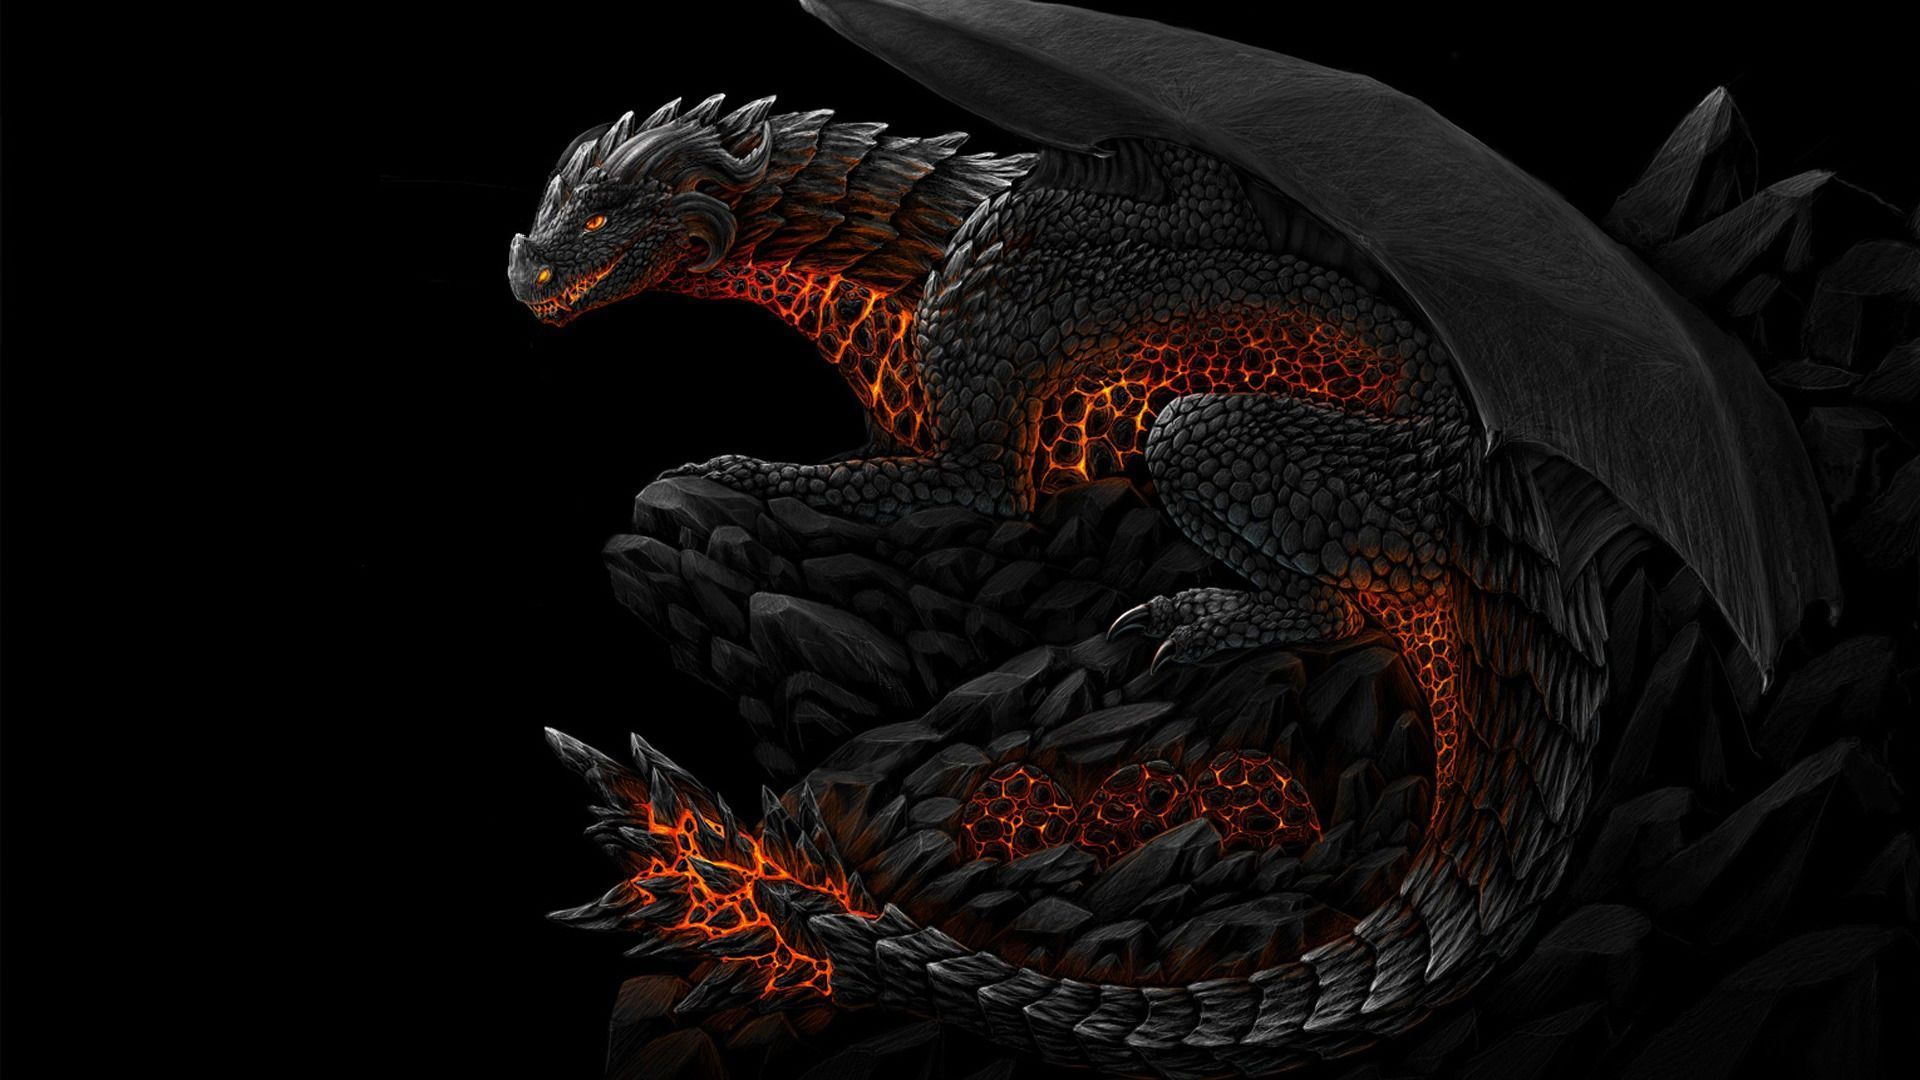 Dragon Fantasy Hd Wallpapers Deep Hd Wallpapers For You Hd